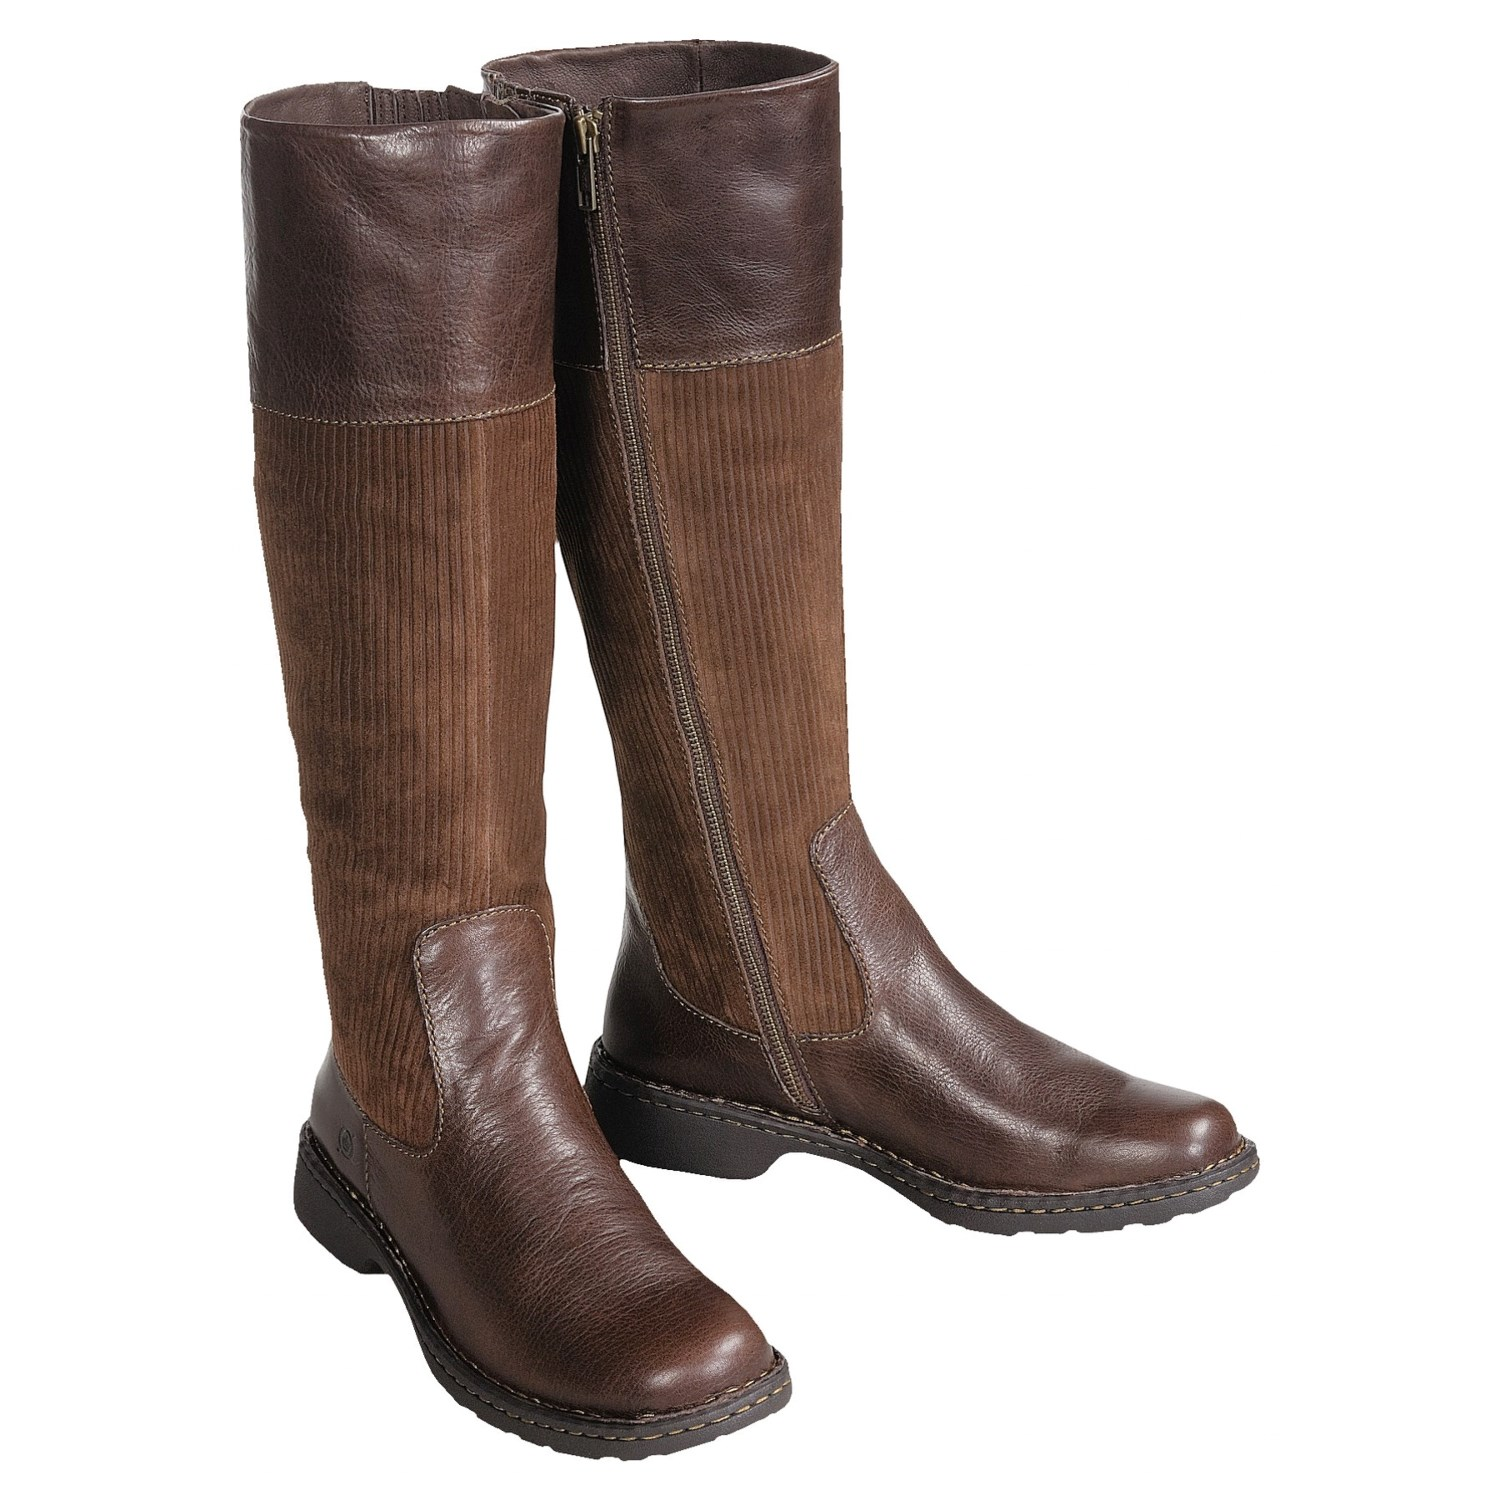 Born Whitley Boots (For Women) 1012N - Save 40%